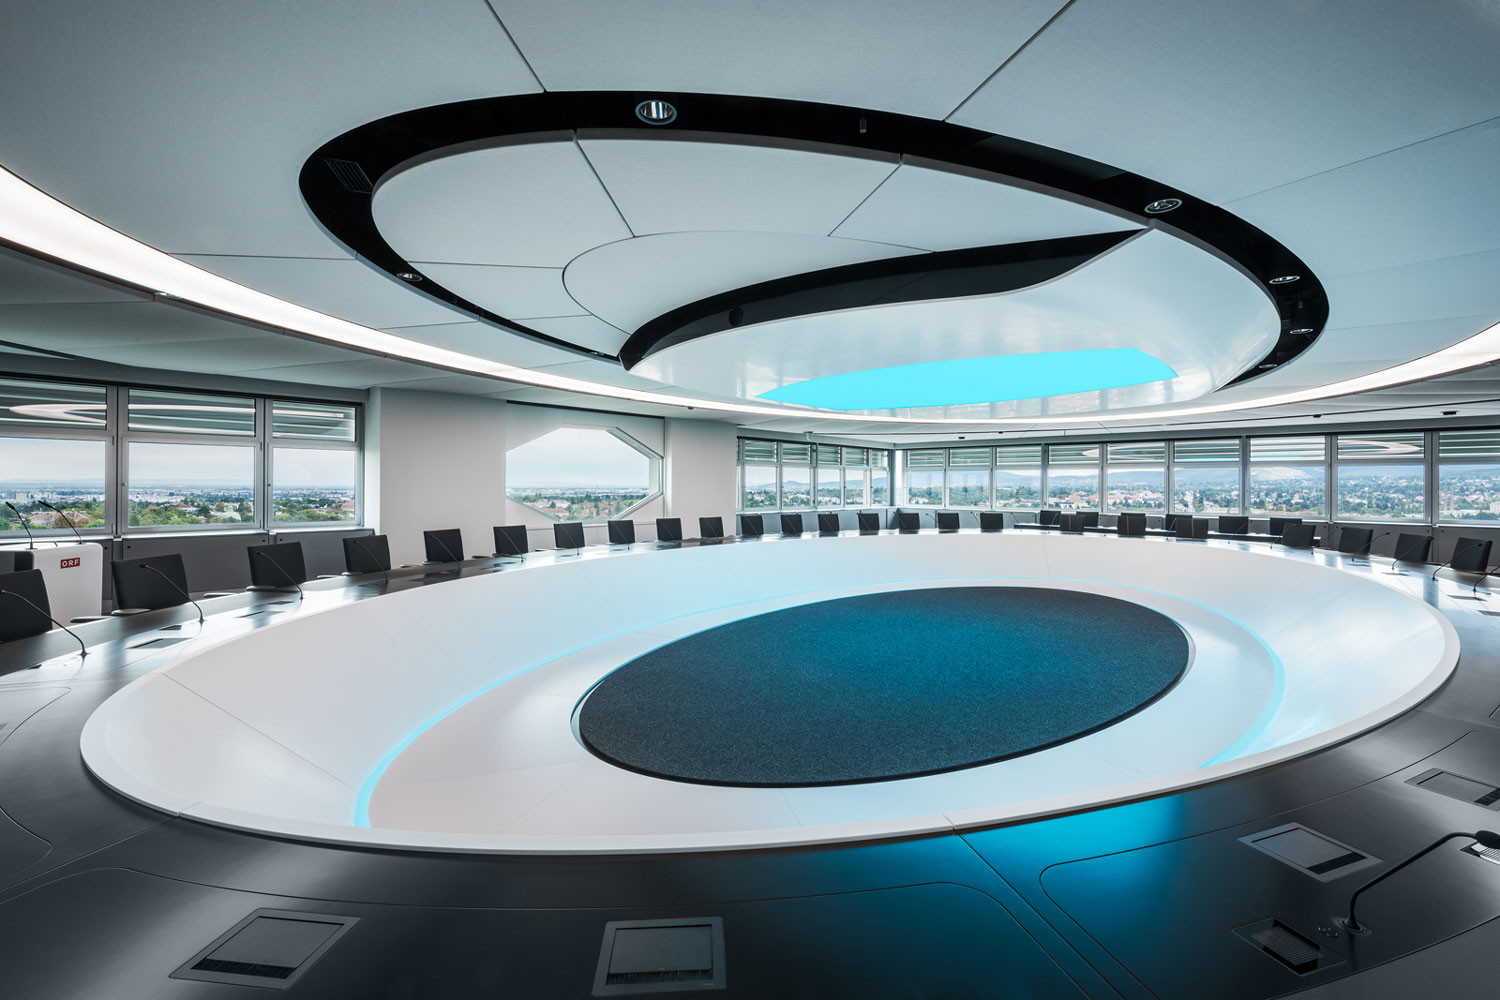 Veech x Veech – ORF Conference room